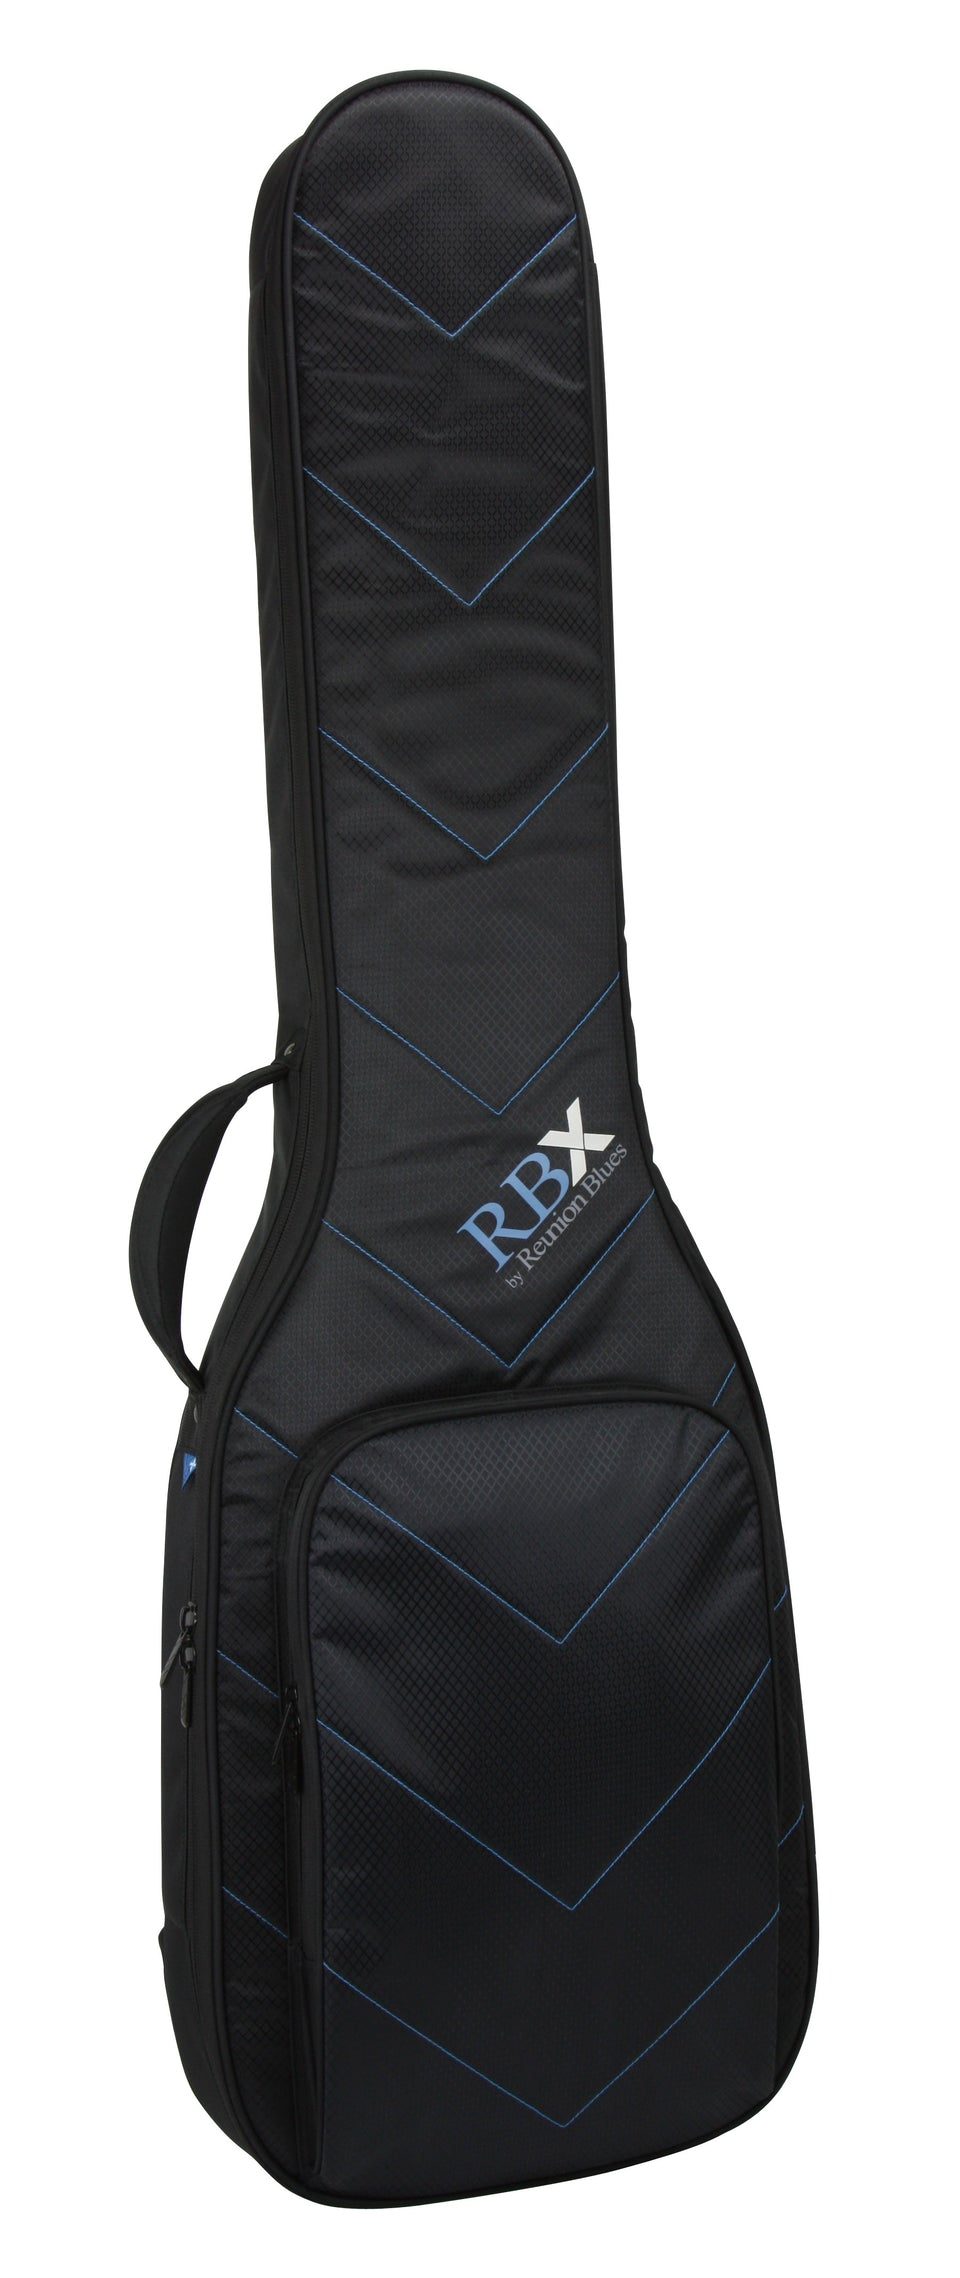 Reunion Blues RBX-B4 Bass Guitar Bag